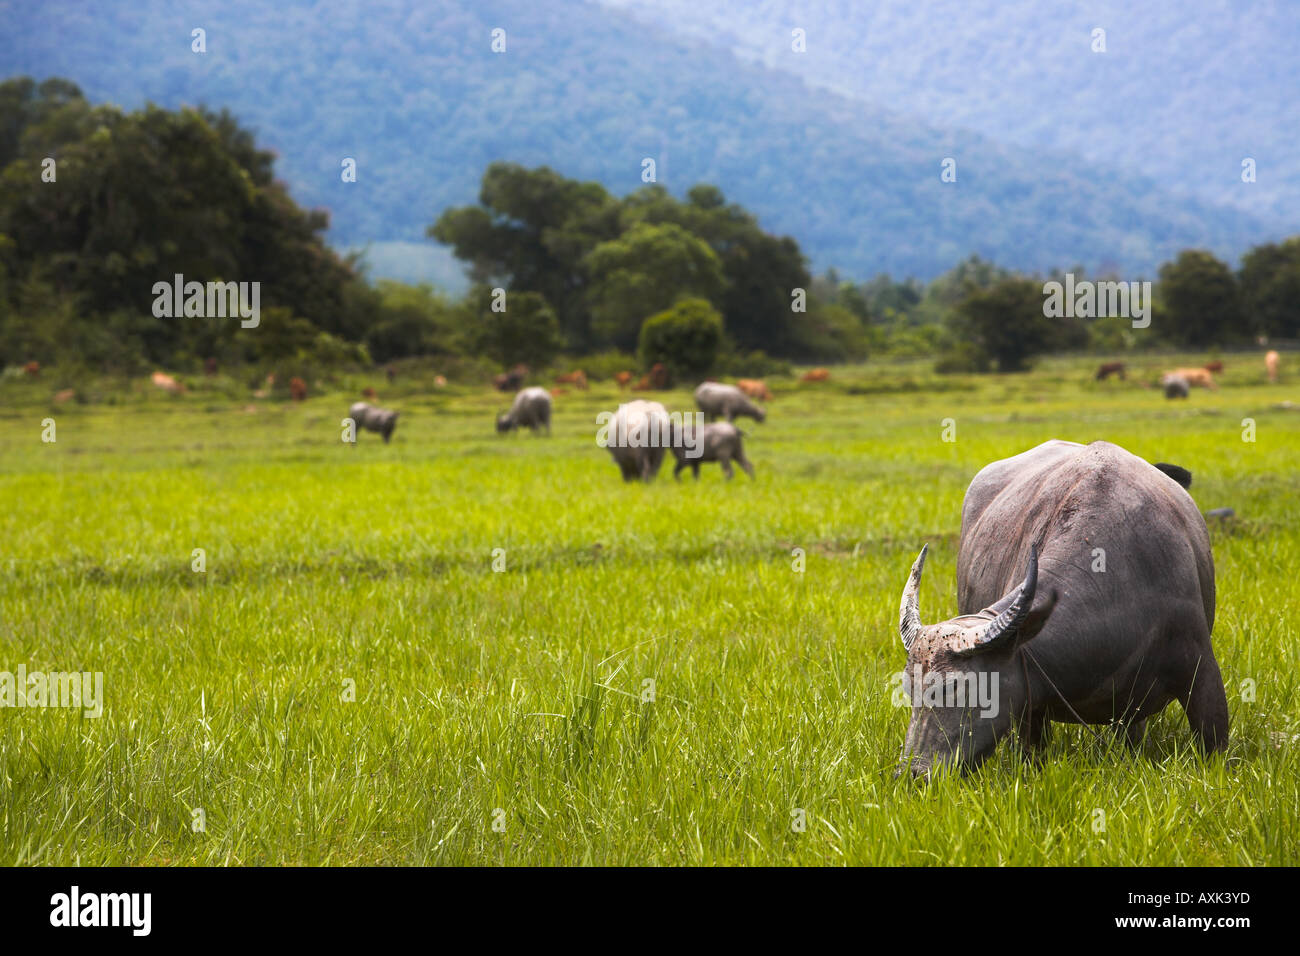 animals horns tail graze romaing country landscape nature eat flock mountains green brown grey white - Stock Image